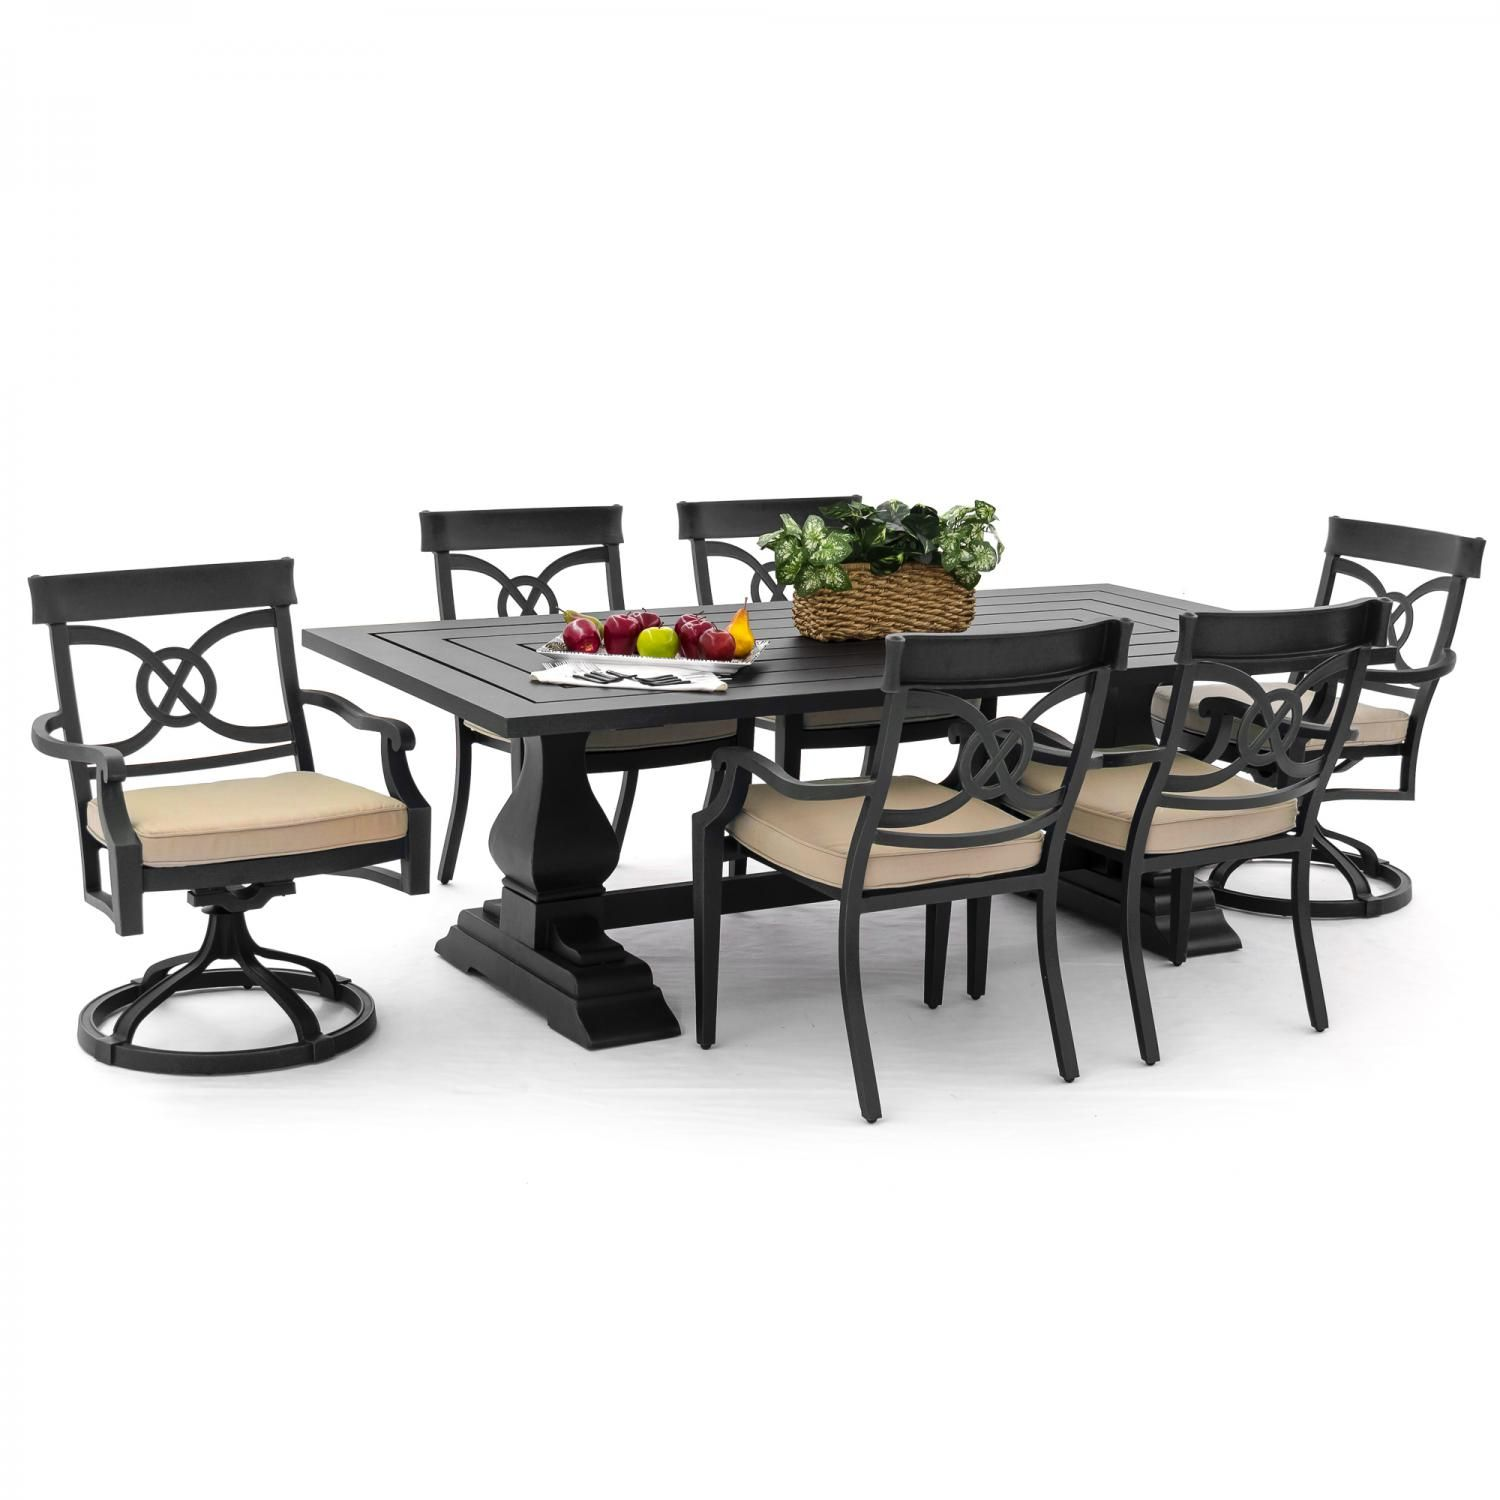 St Charles 7 Piece Cast Aluminum Patio Dining Set With 2 Swivel